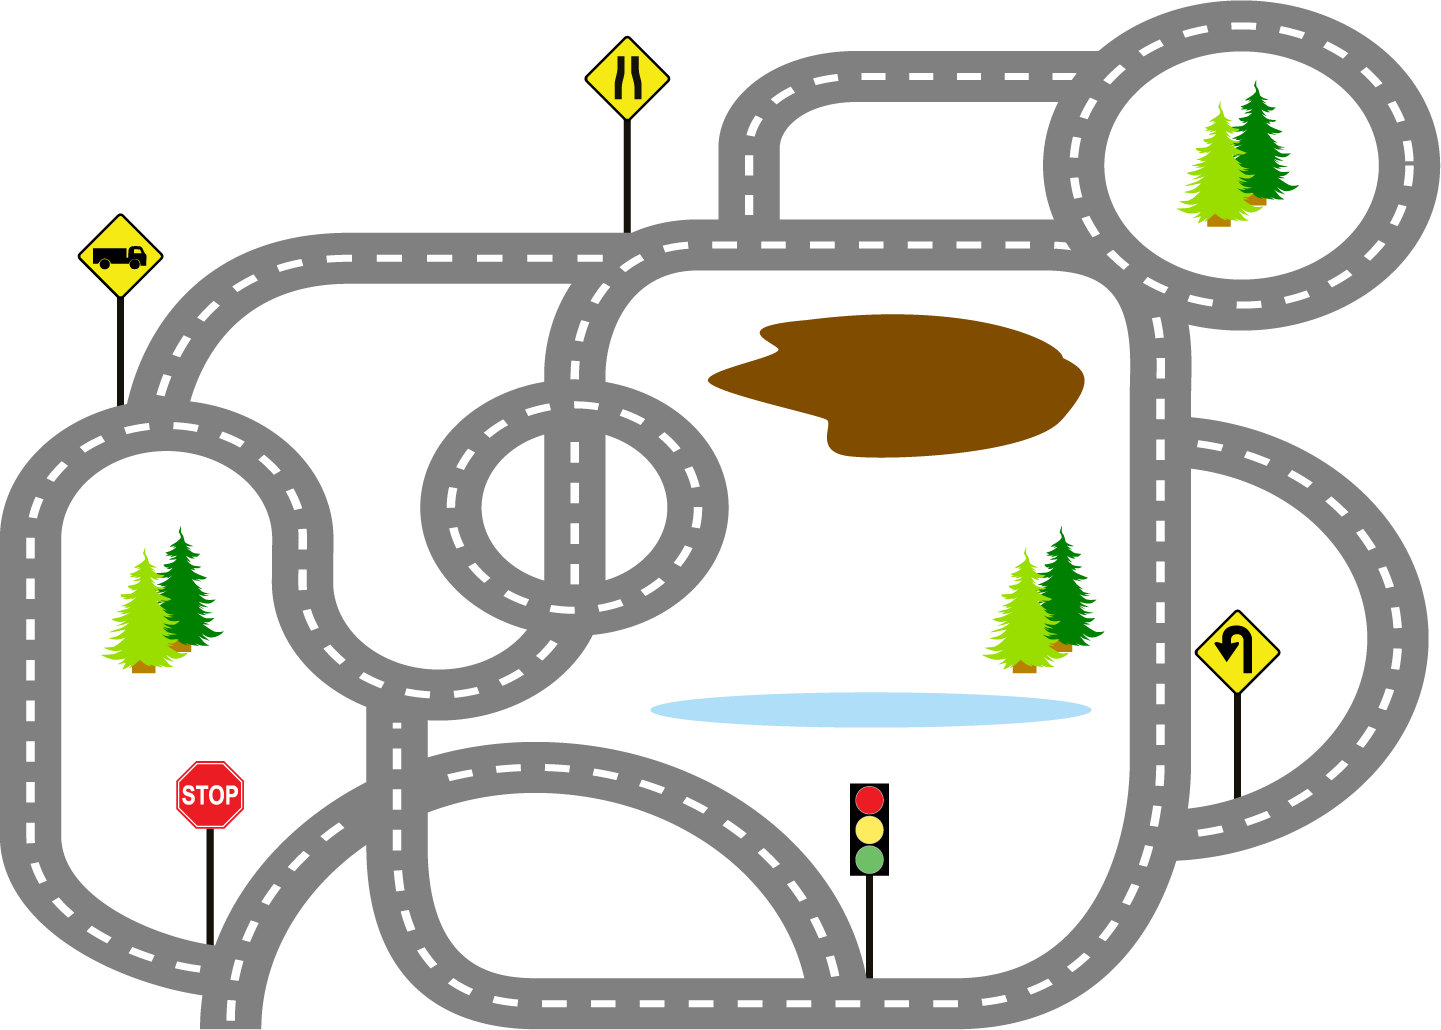 Race clipart road #11